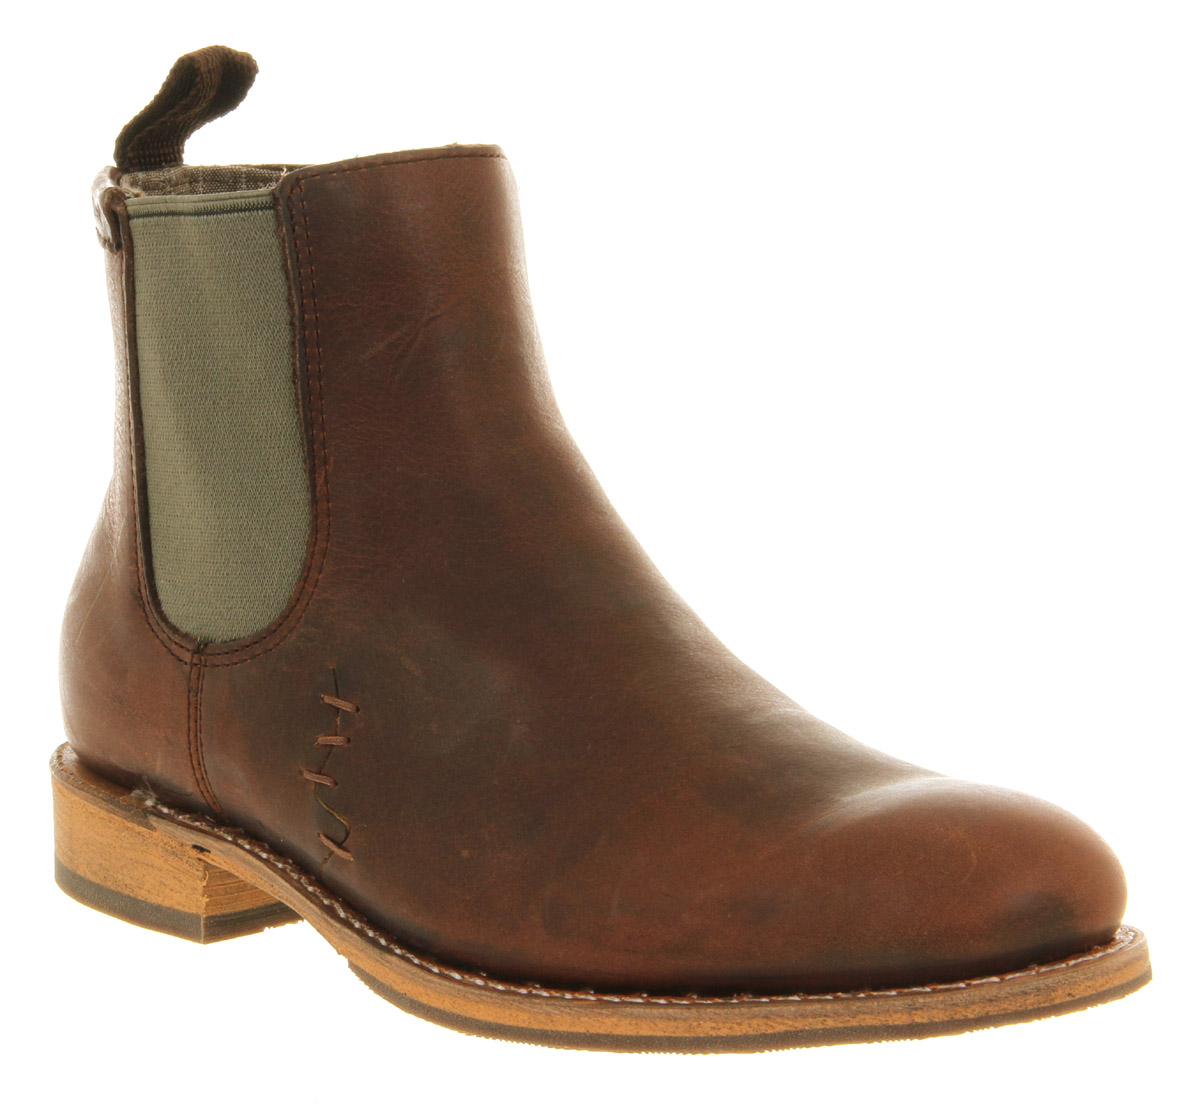 Chelsea boots for men - deals on 1001 Blocks